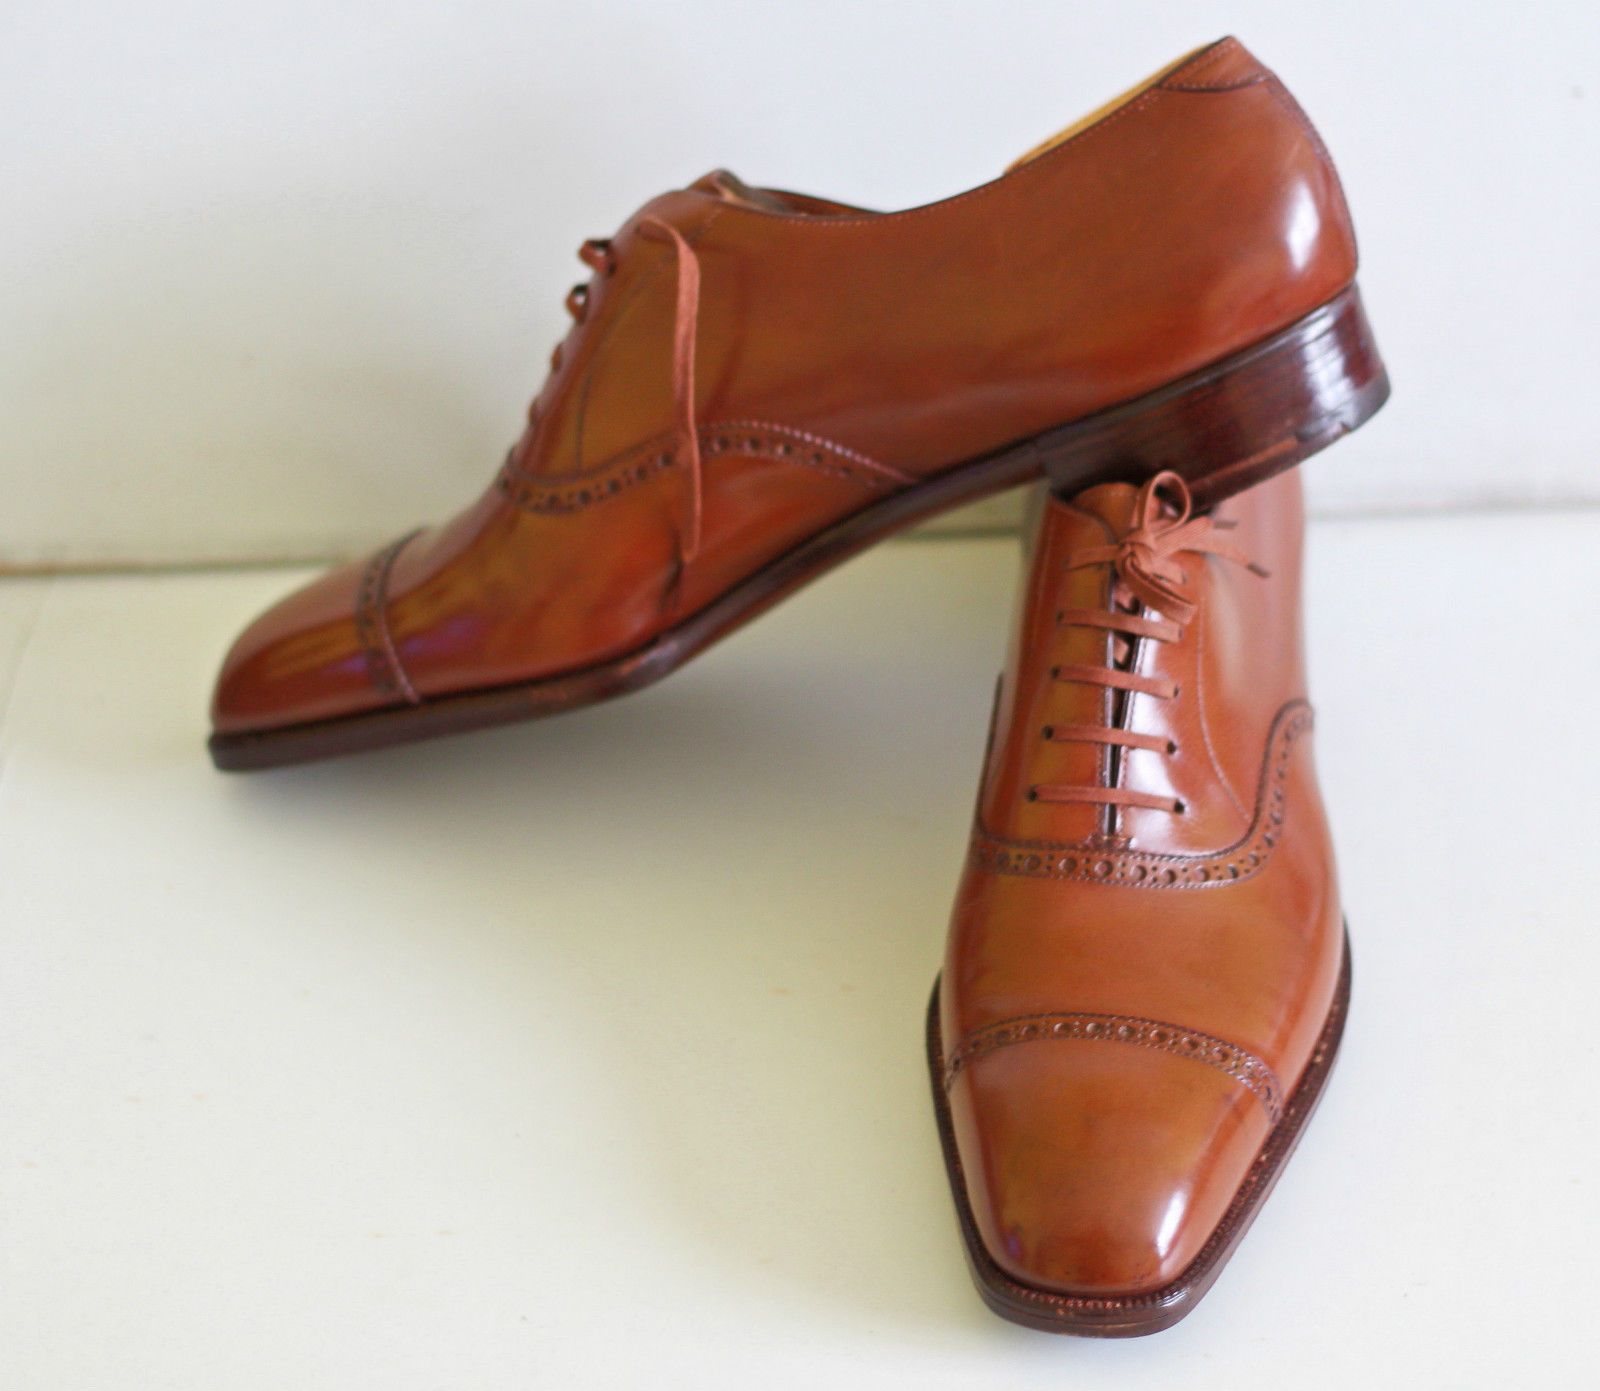 James Noir De Oxfords En Cuir De Veau George De Cleverley VPKU8zL